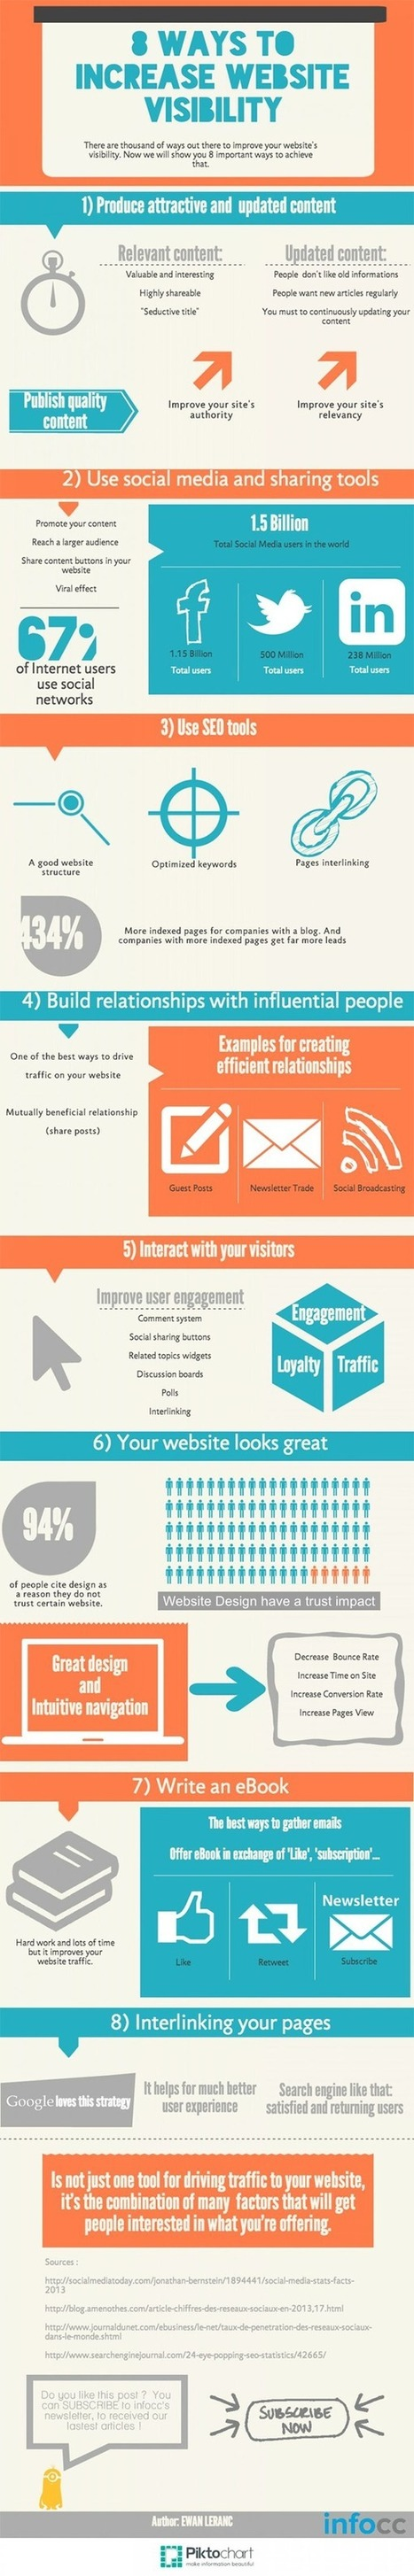 8 Ways to Increase the Visibility of Your Website | Website Design Company | Scoop.it